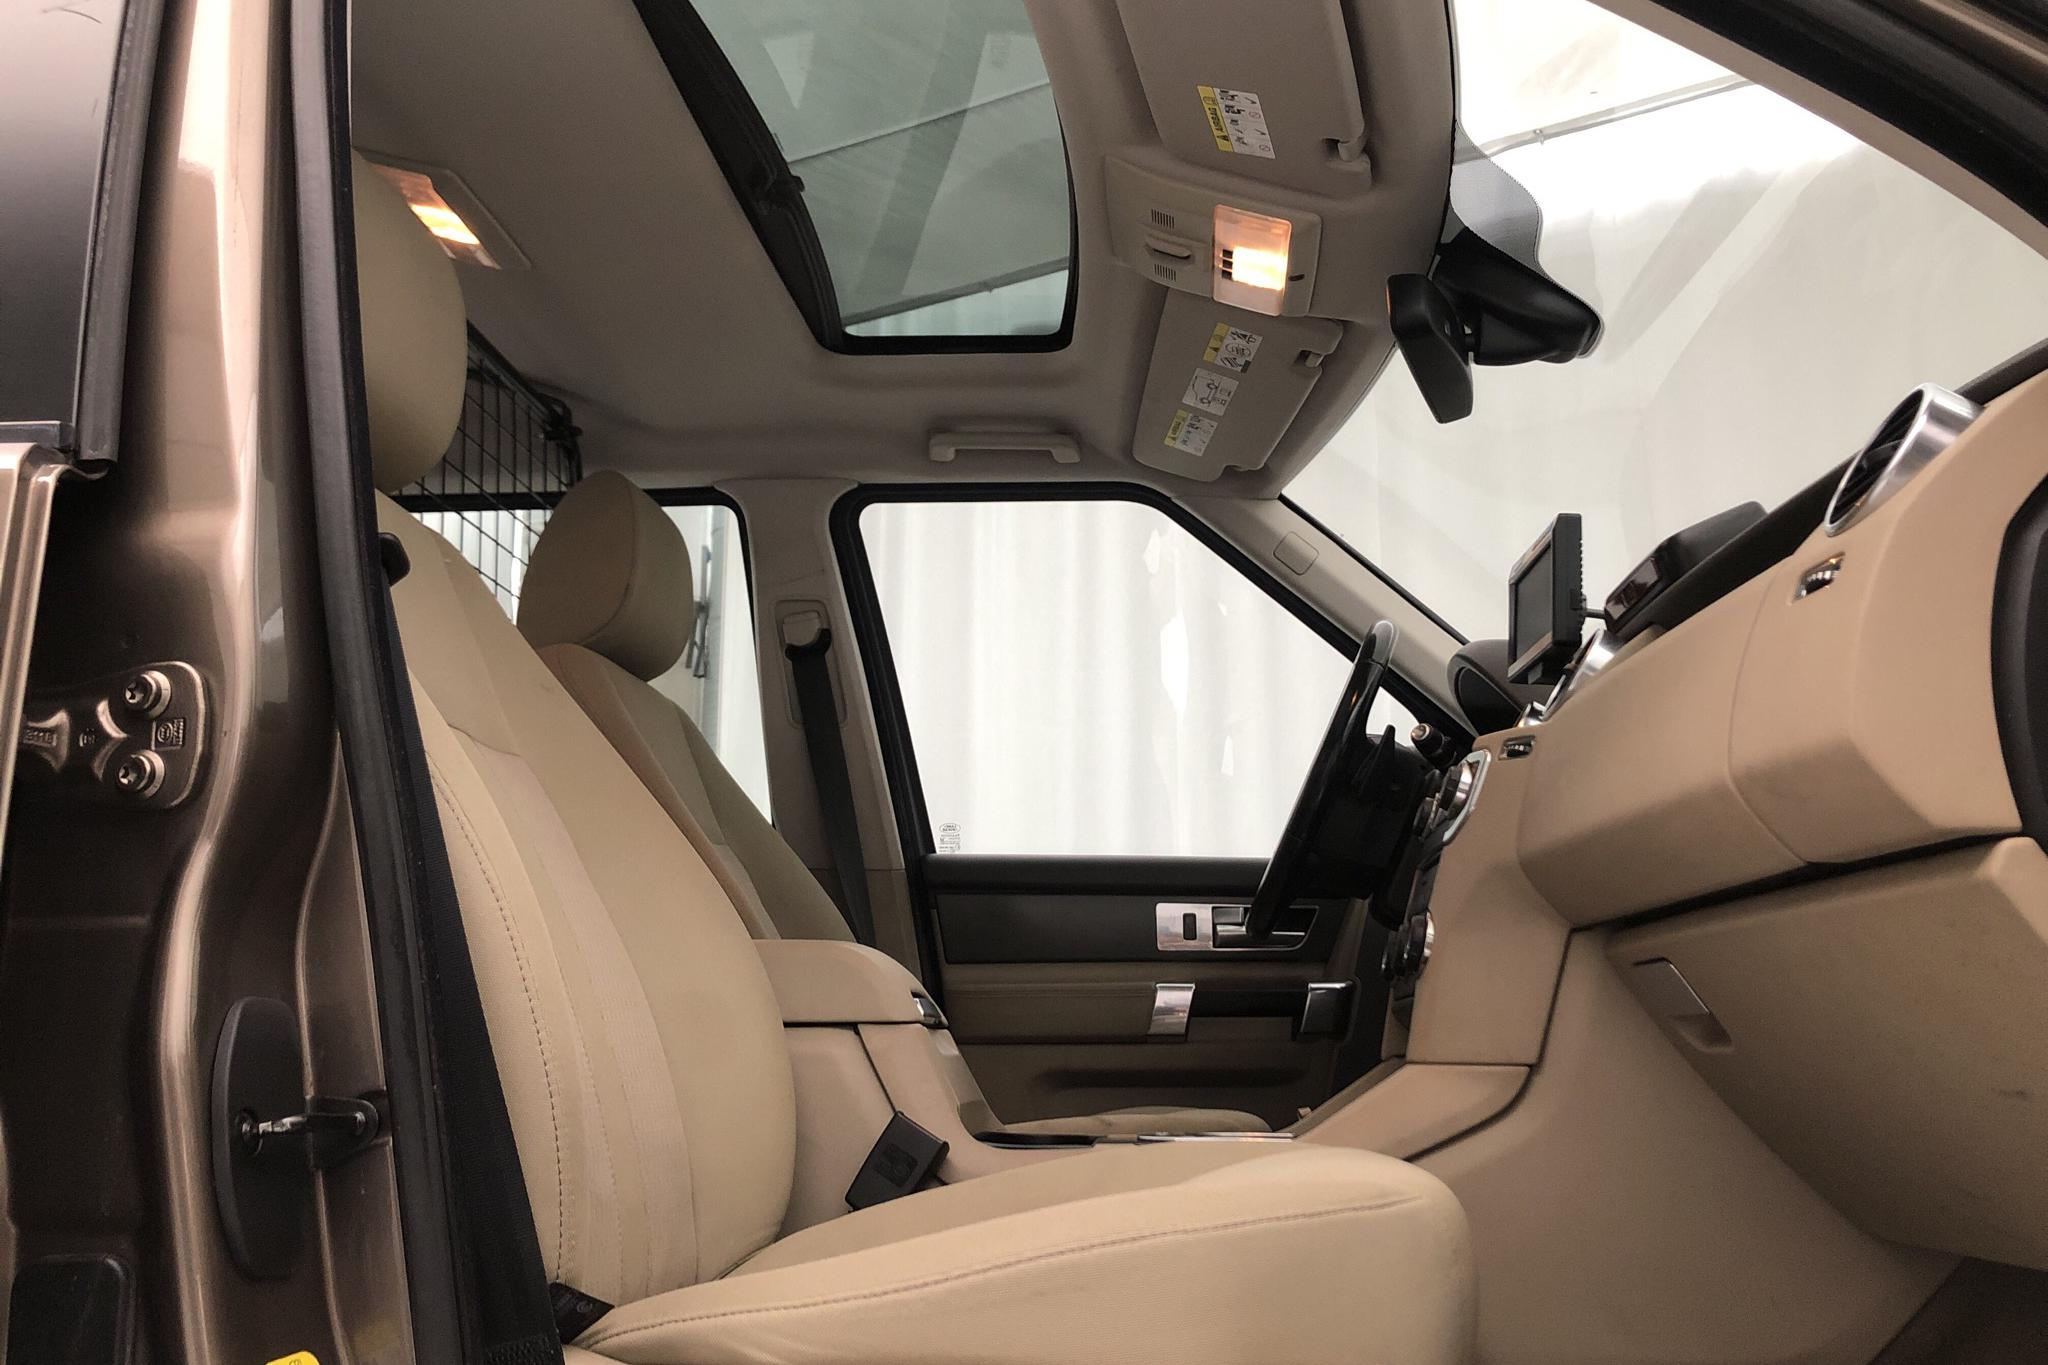 Land Rover Discovery 4 3.0 TDV6 (256hk) - 10 990 mil - Automat - Light Brown - 2012